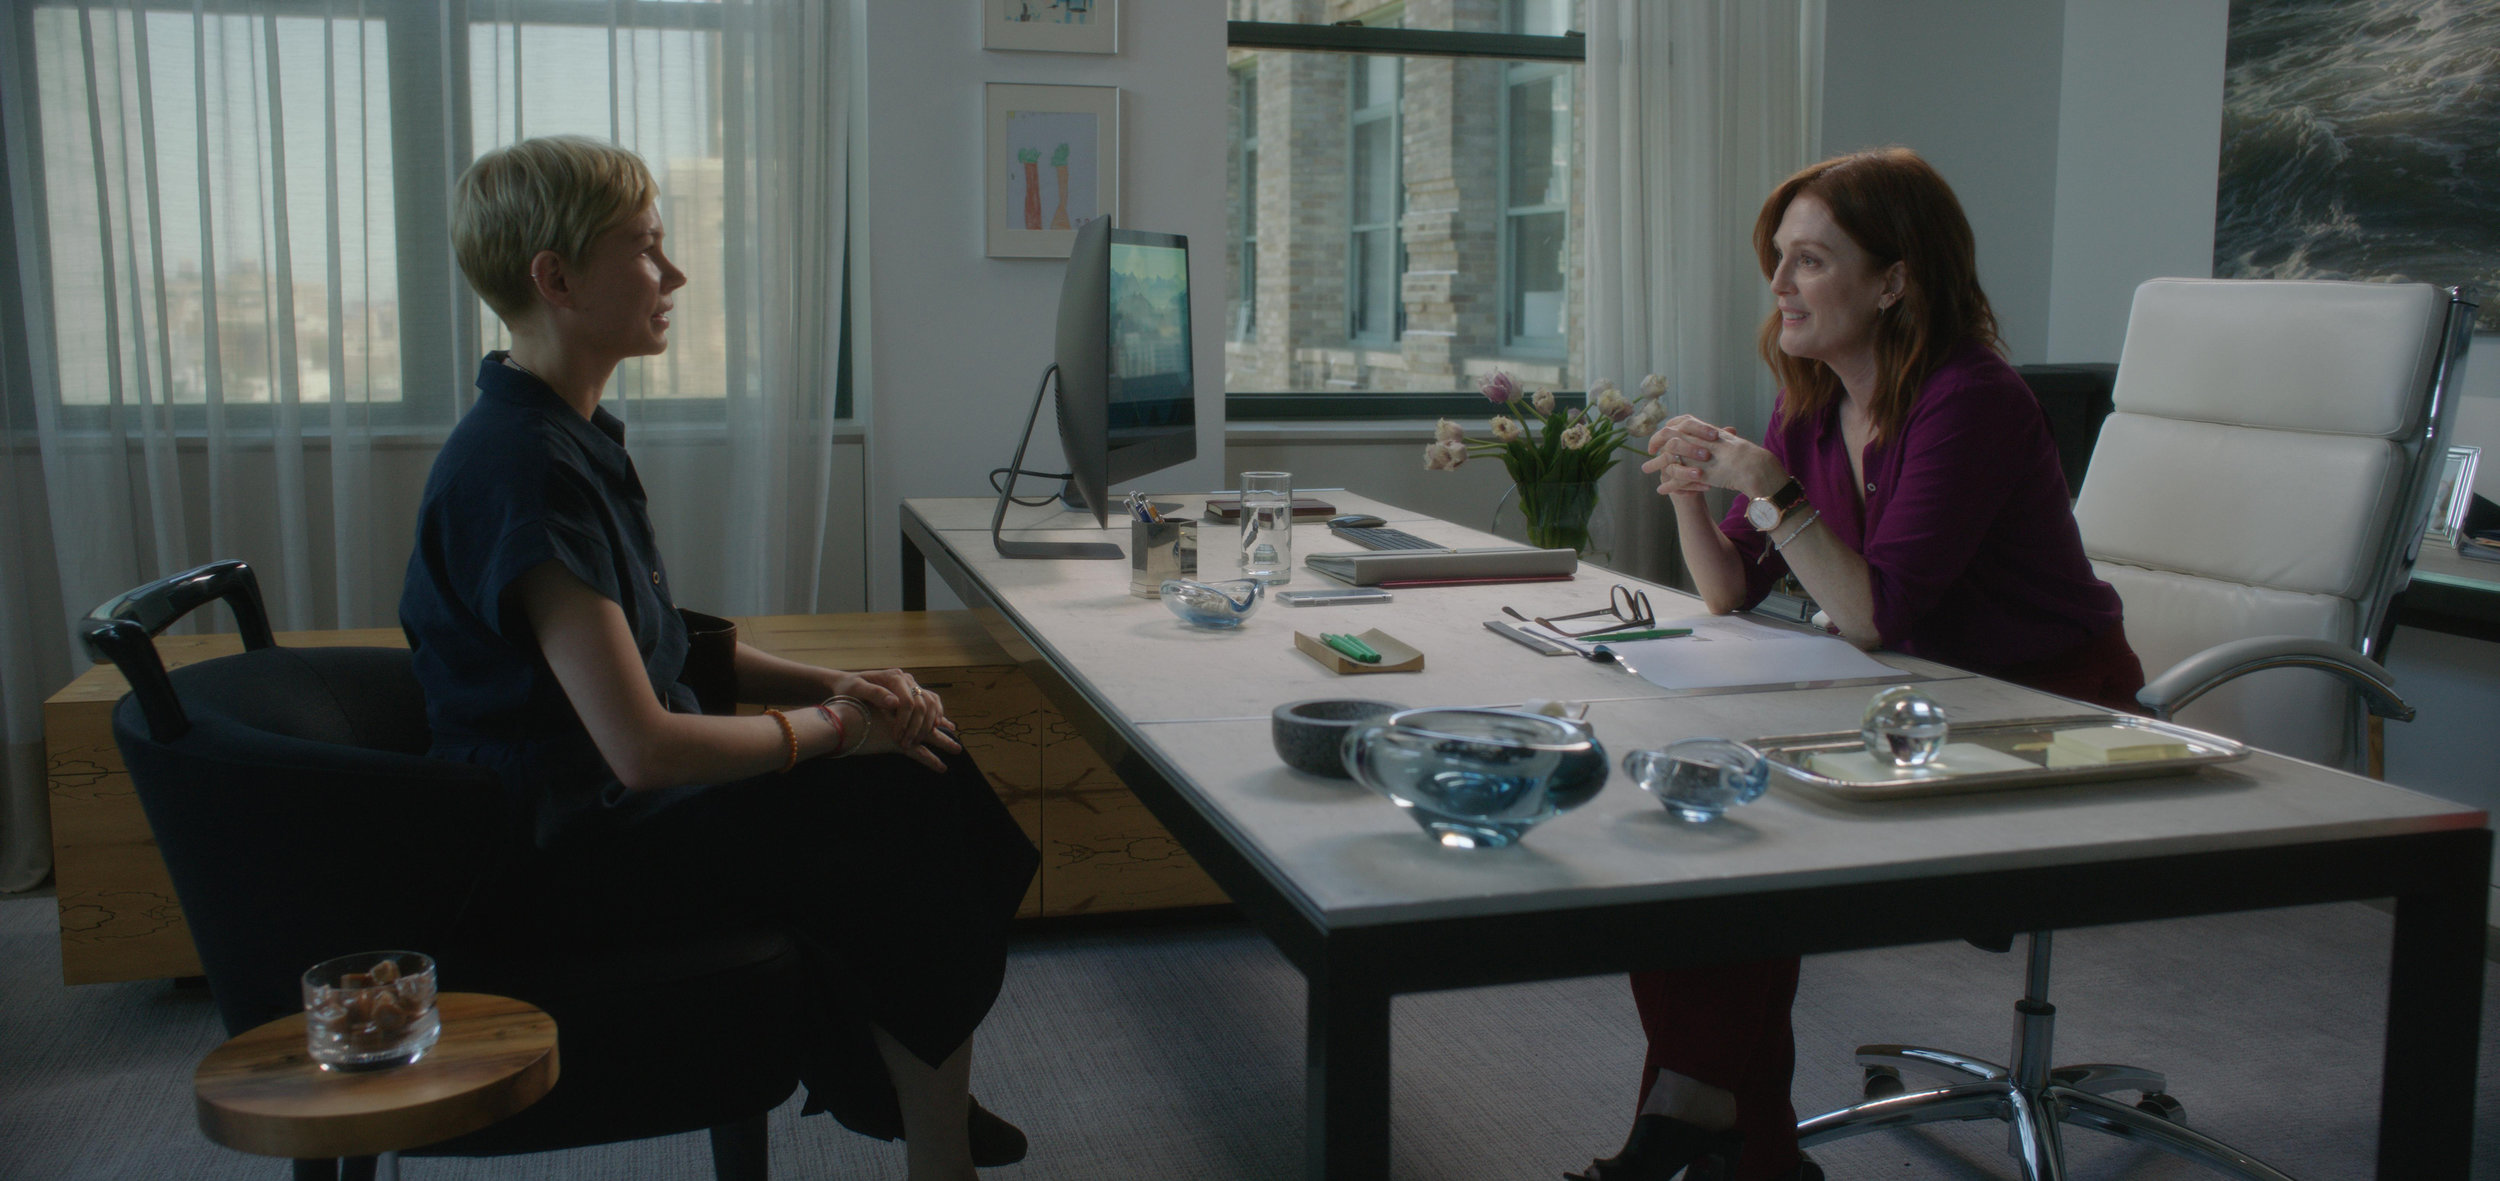 "Isabel (Michelle Williams, left) asks tech executive Theresa (Julianne Moore) for money to run a school in India, in a scene from the drama ""After the Wedding."" (Photo courtesy of Sony Pictures Classics.)"